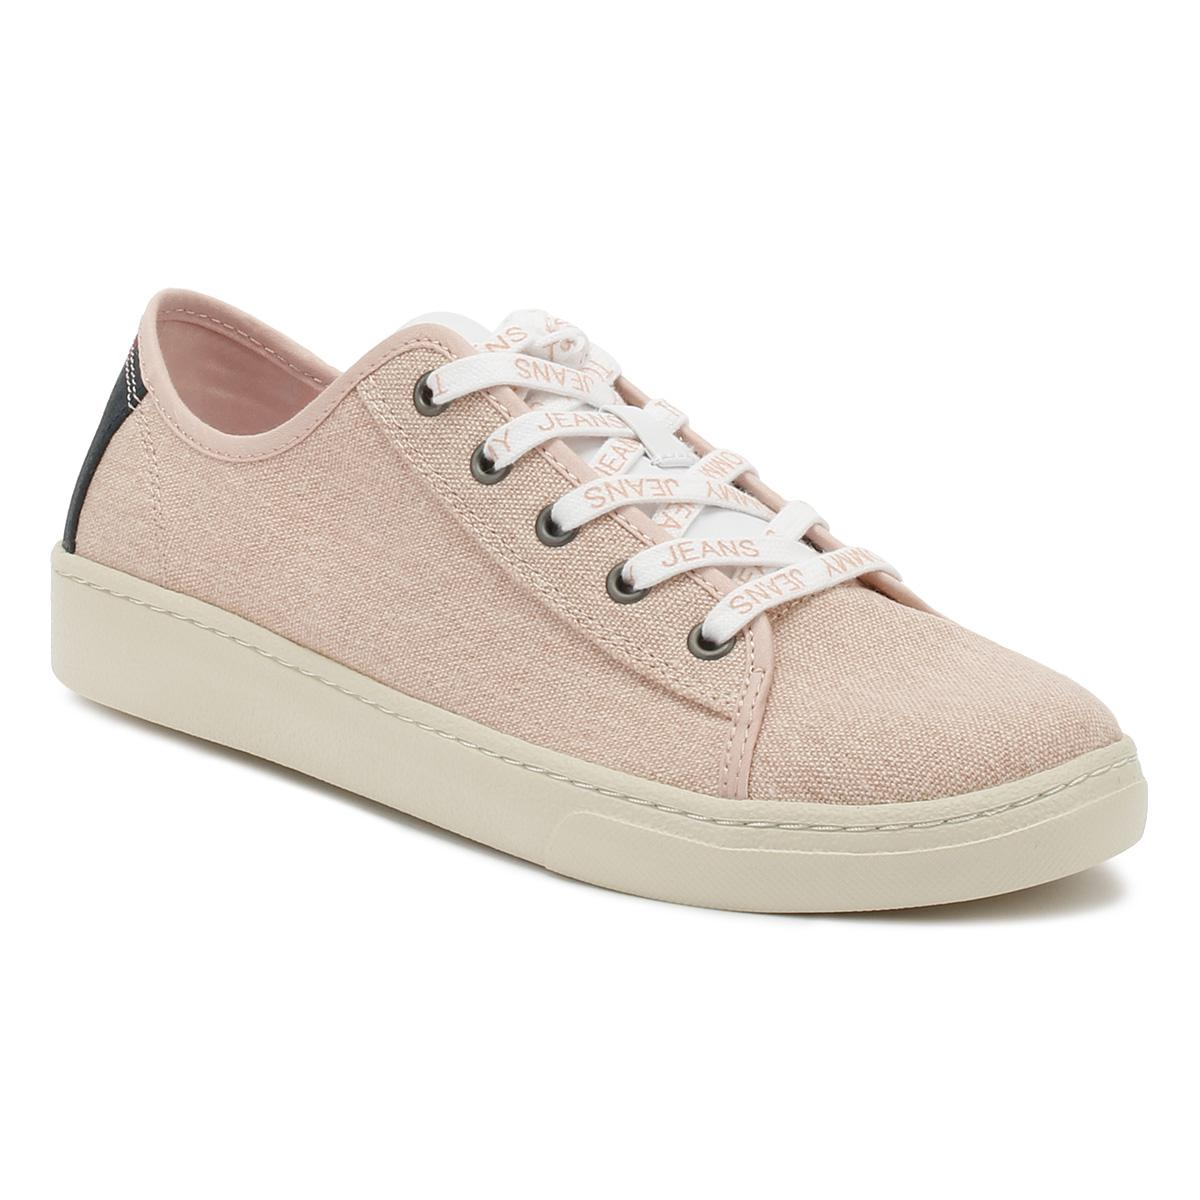 facb608e68cfec Tommy Hilfiger Tommy Jeans Womens Rose Cloud Low Trainers in Pink ...